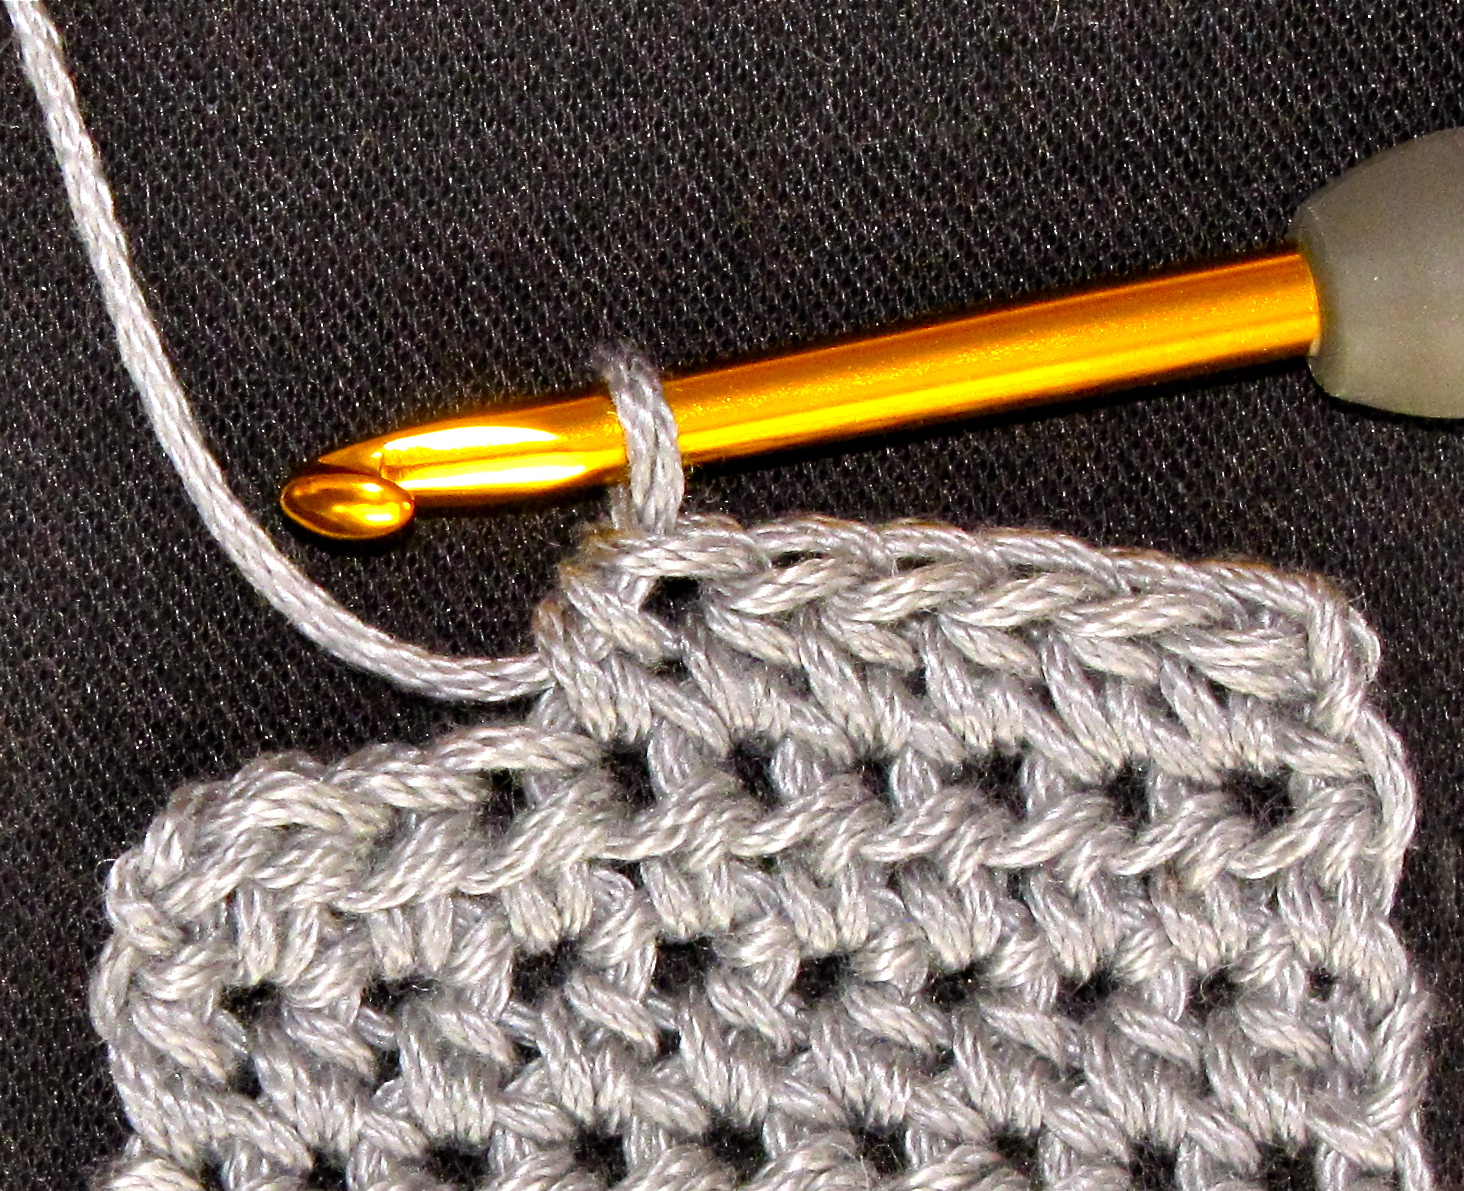 Crochet Stitches Hdc : ... Crochet Pattern Companion: That Tricky Half Double Crochet Stitch (hdc